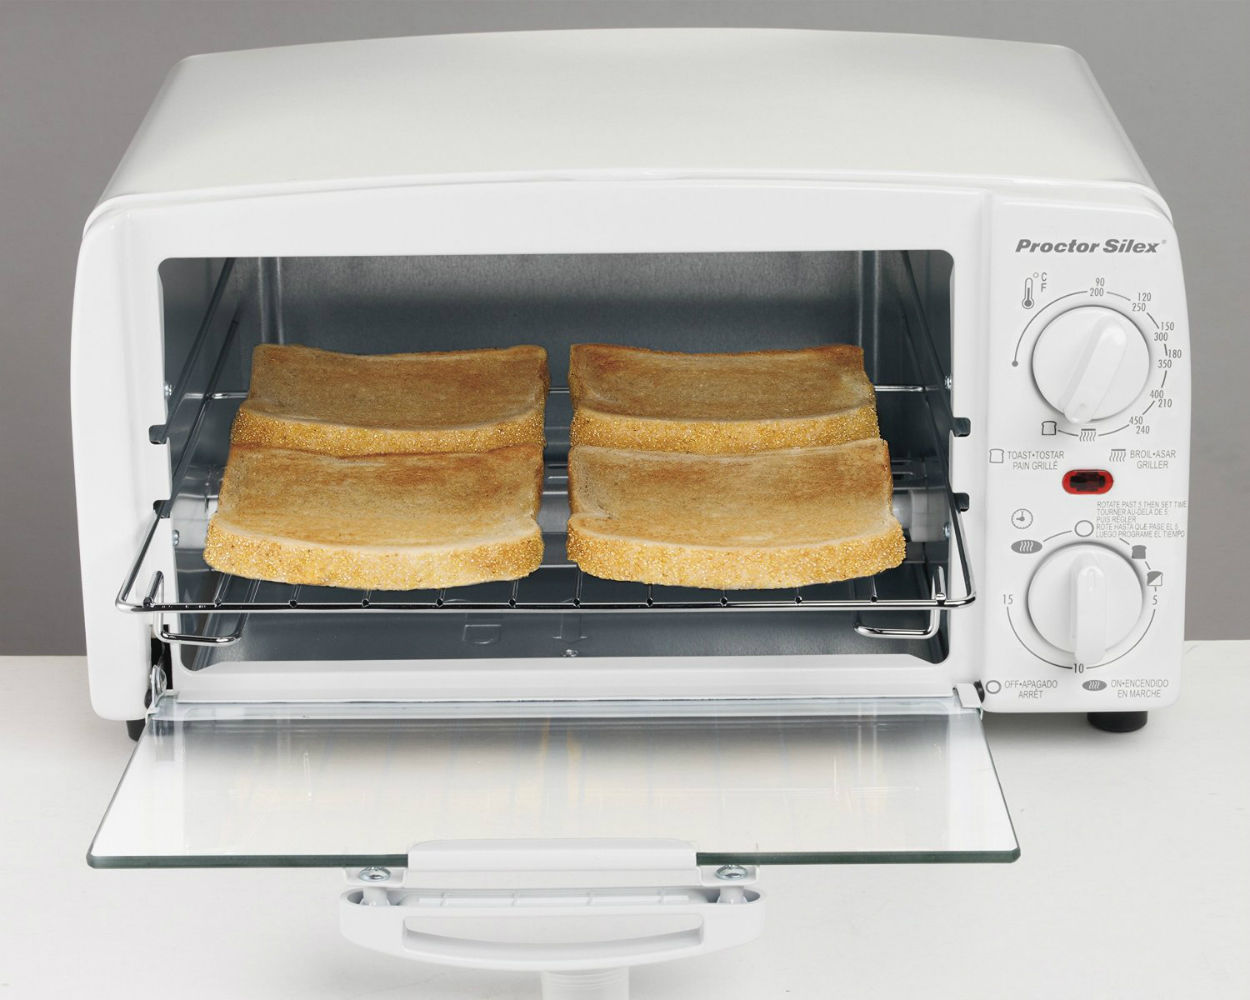 Proctor Silex Toaster Oven 31116 For Sale In Jamaica